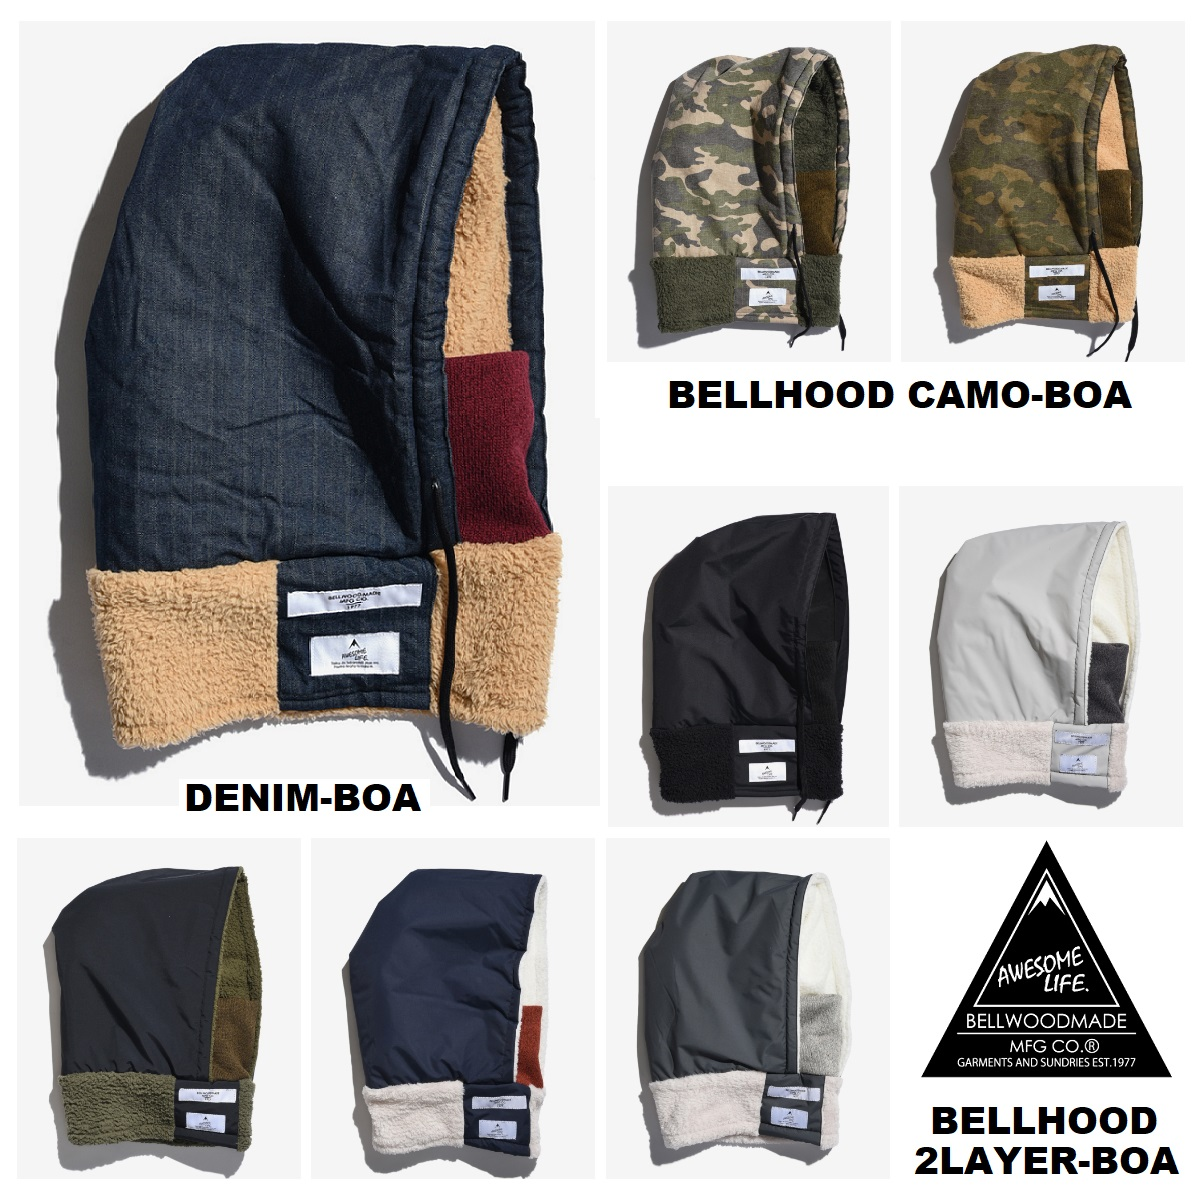 BELLWOOD MADE_商品04_BELLHOOD 2LAYER BOA